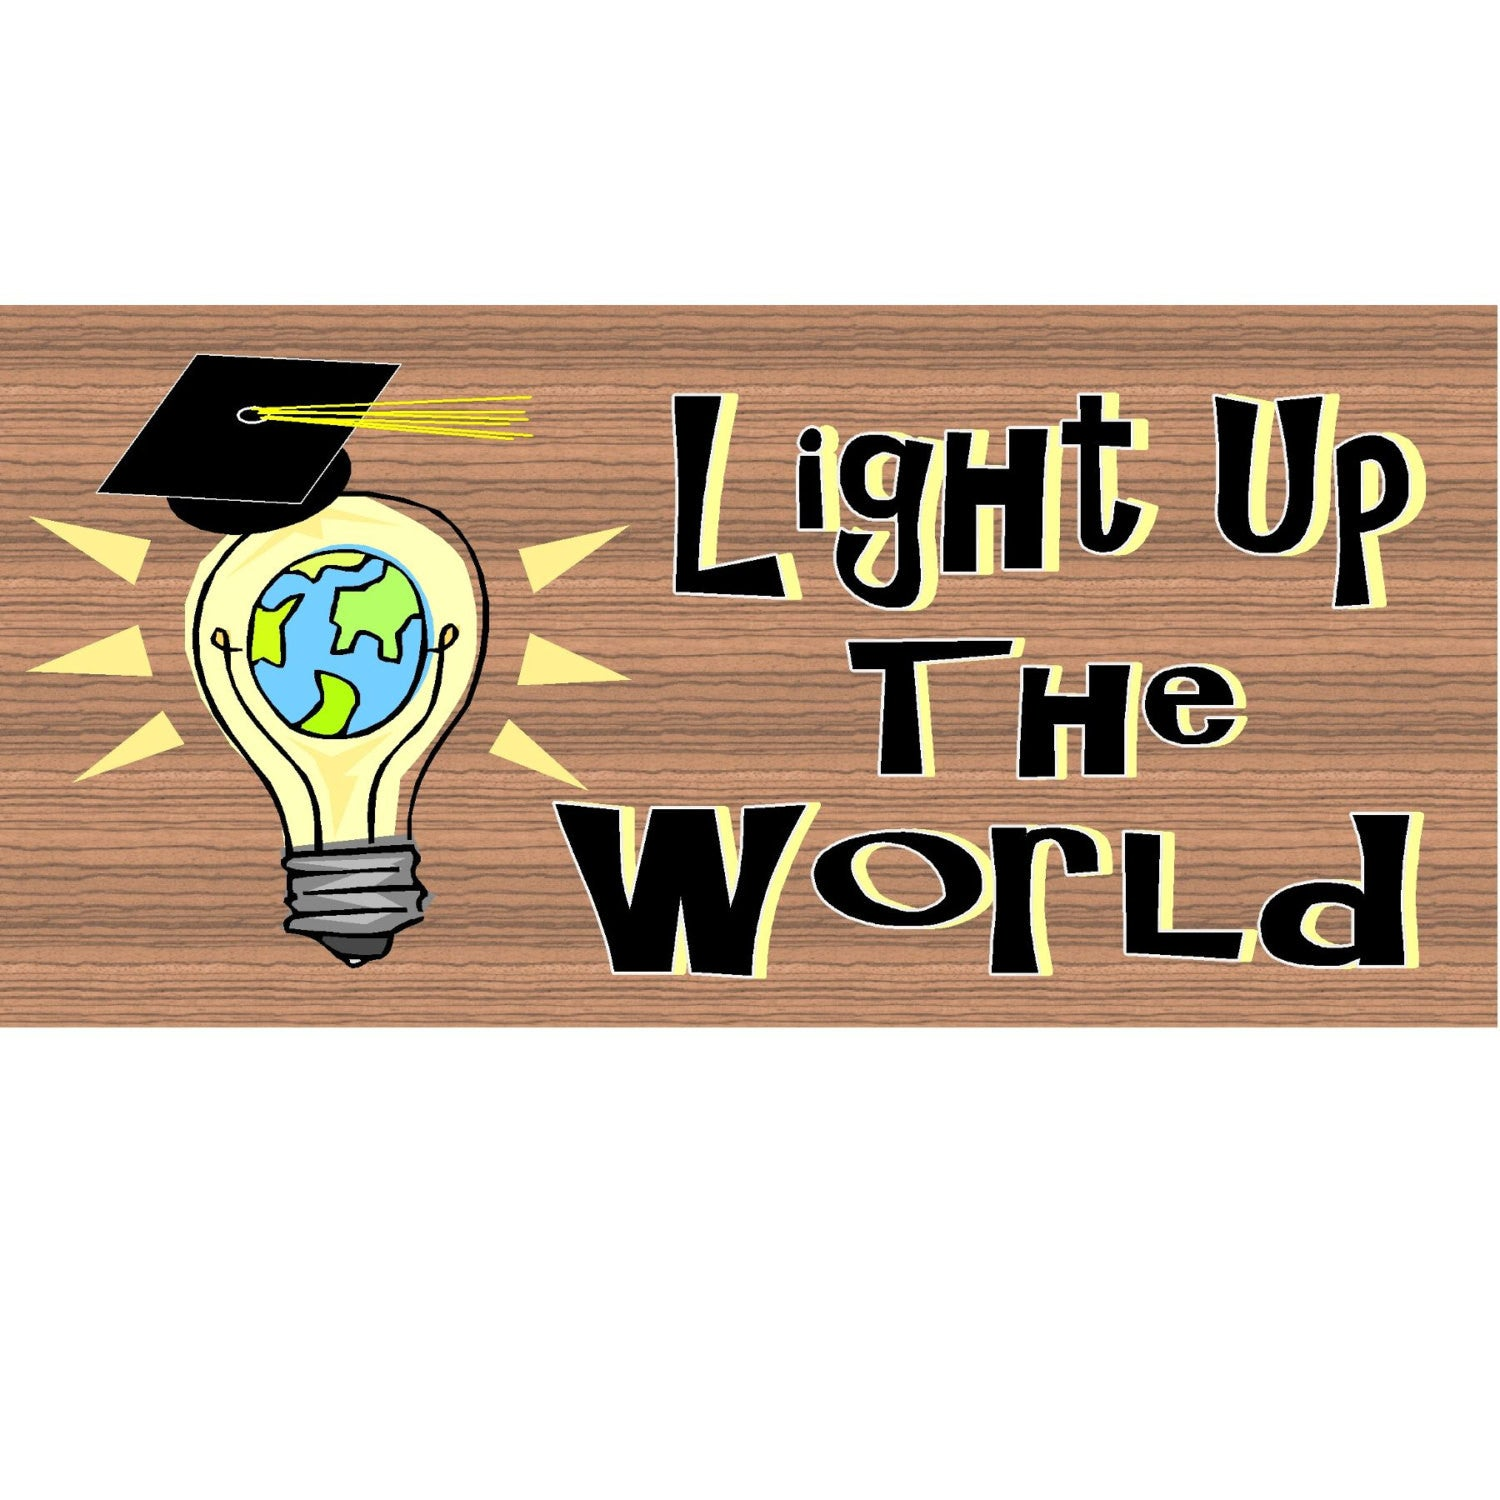 Graduation Wood Signs -Light Up the World- GS 950- Graduation Plaque